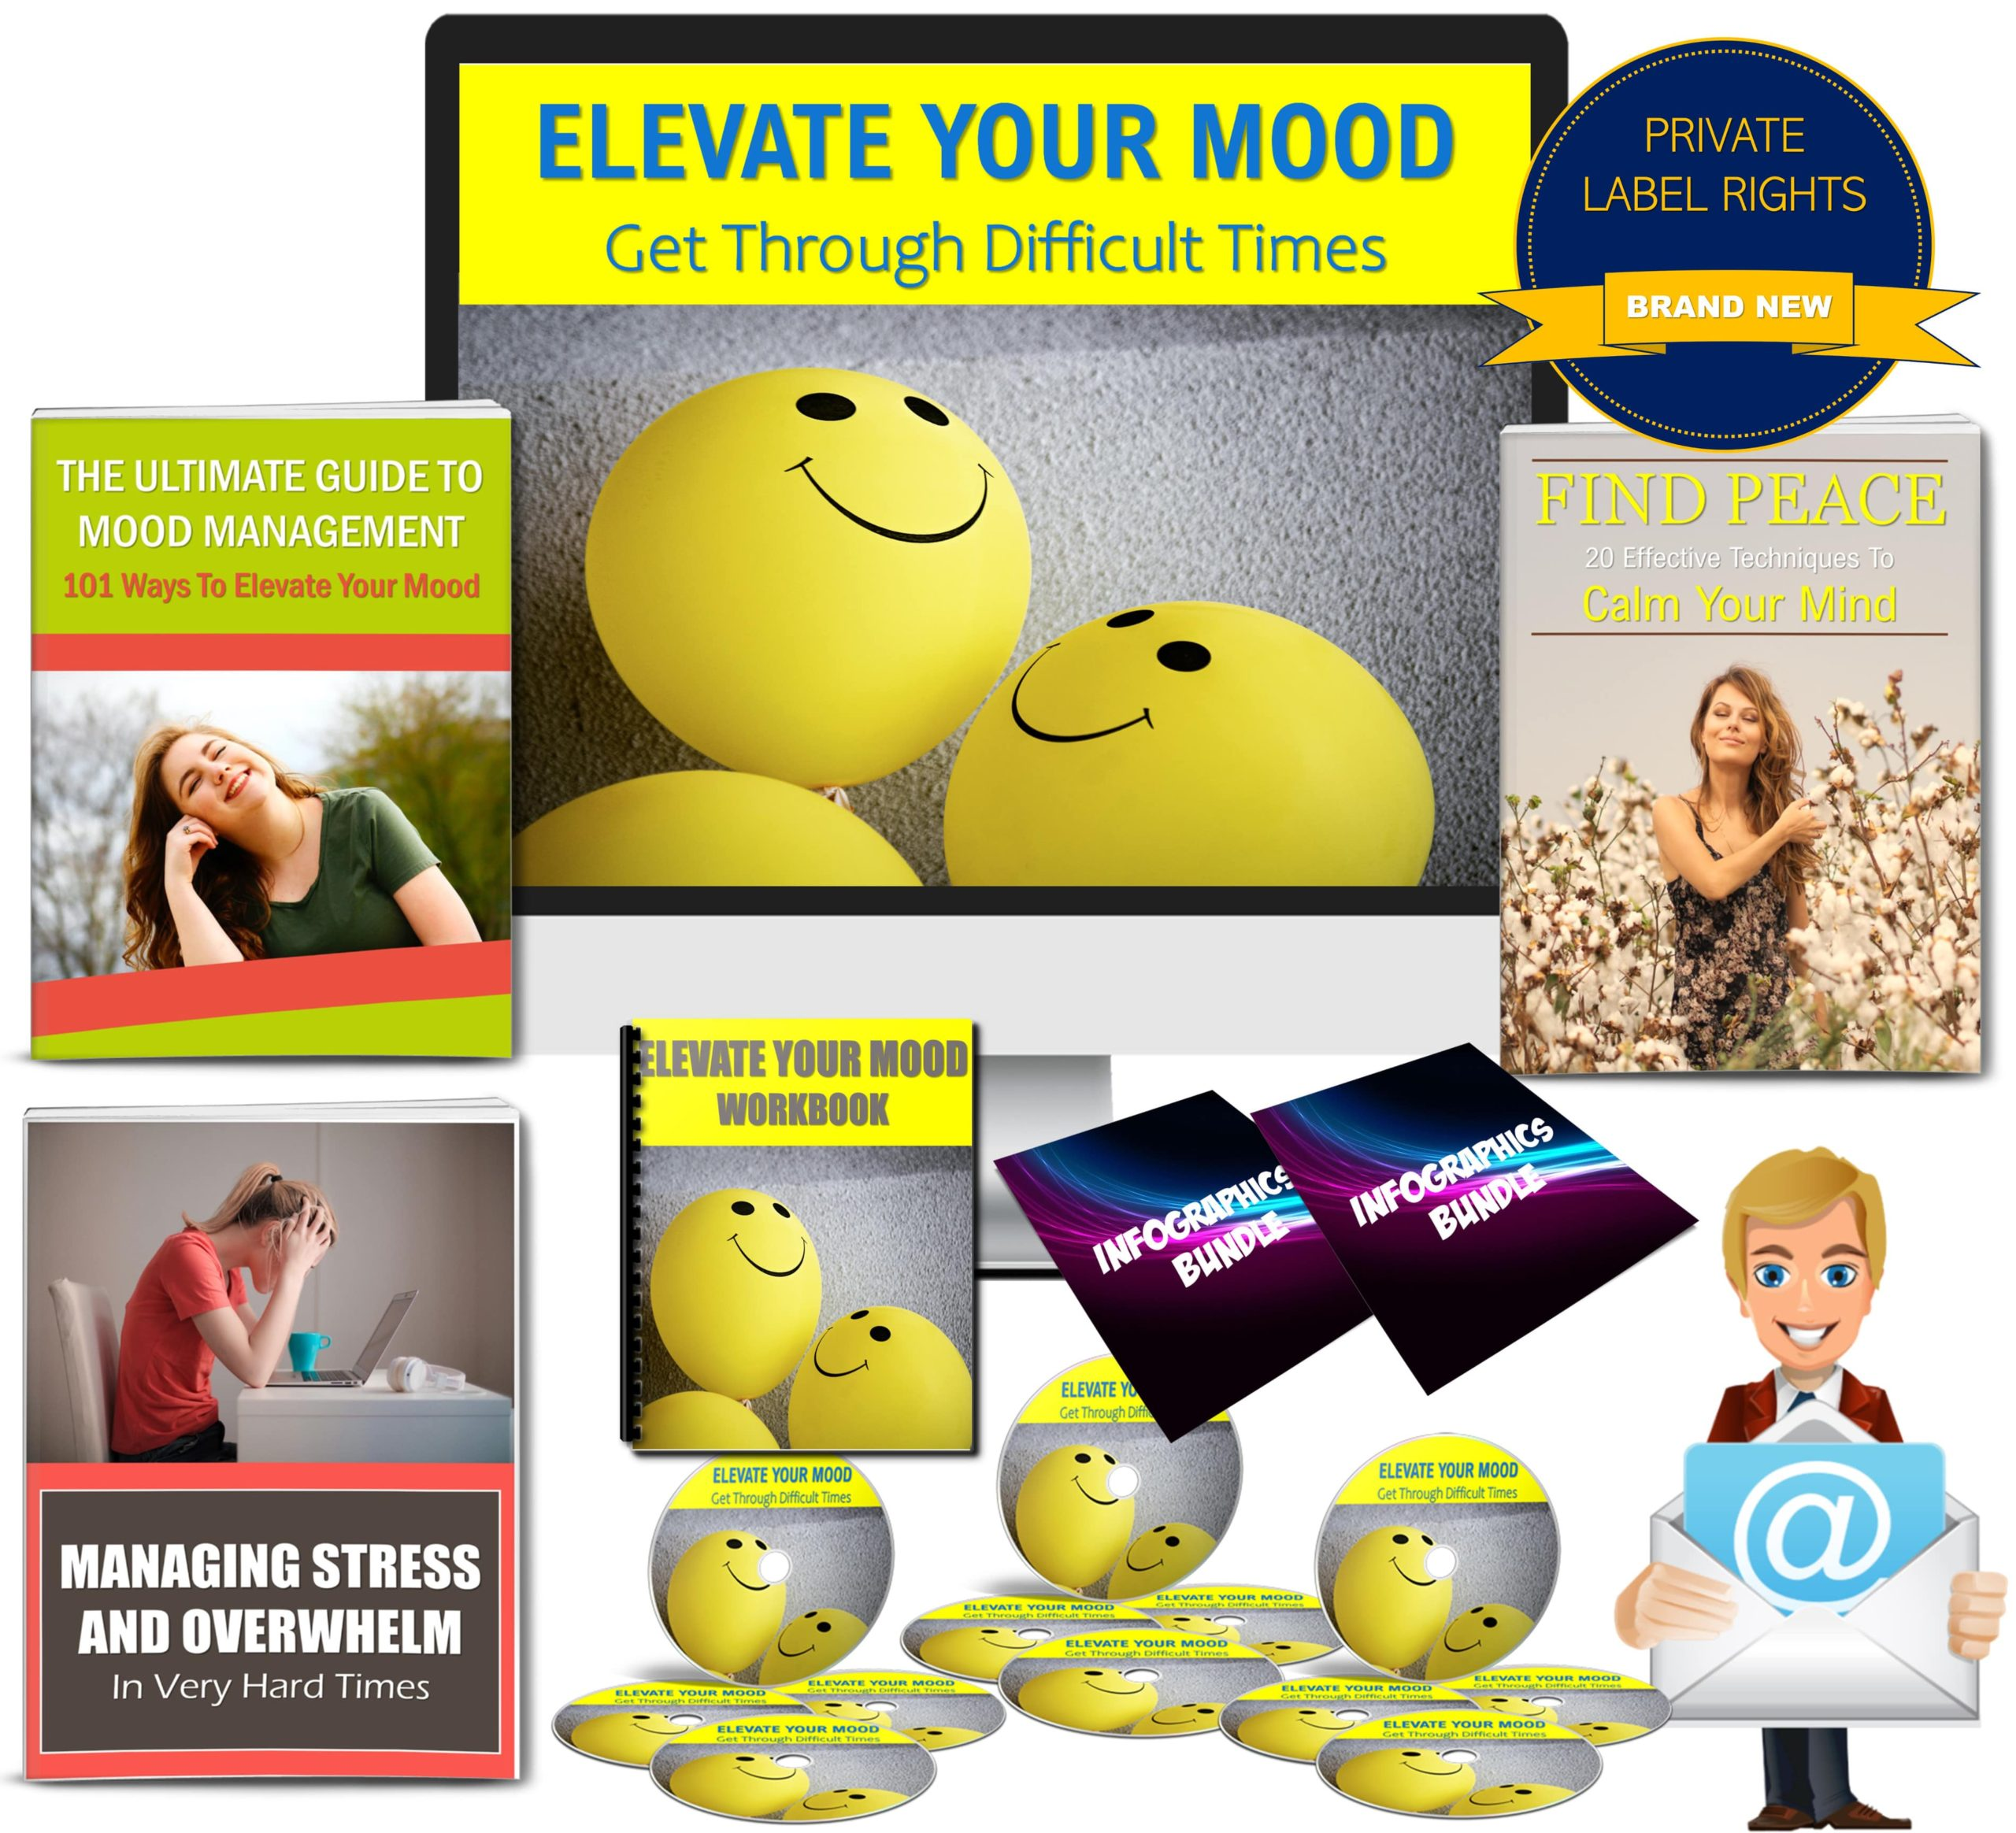 Elevate Your Mood: Get Through Difficult Times 300 Pcs. PLR